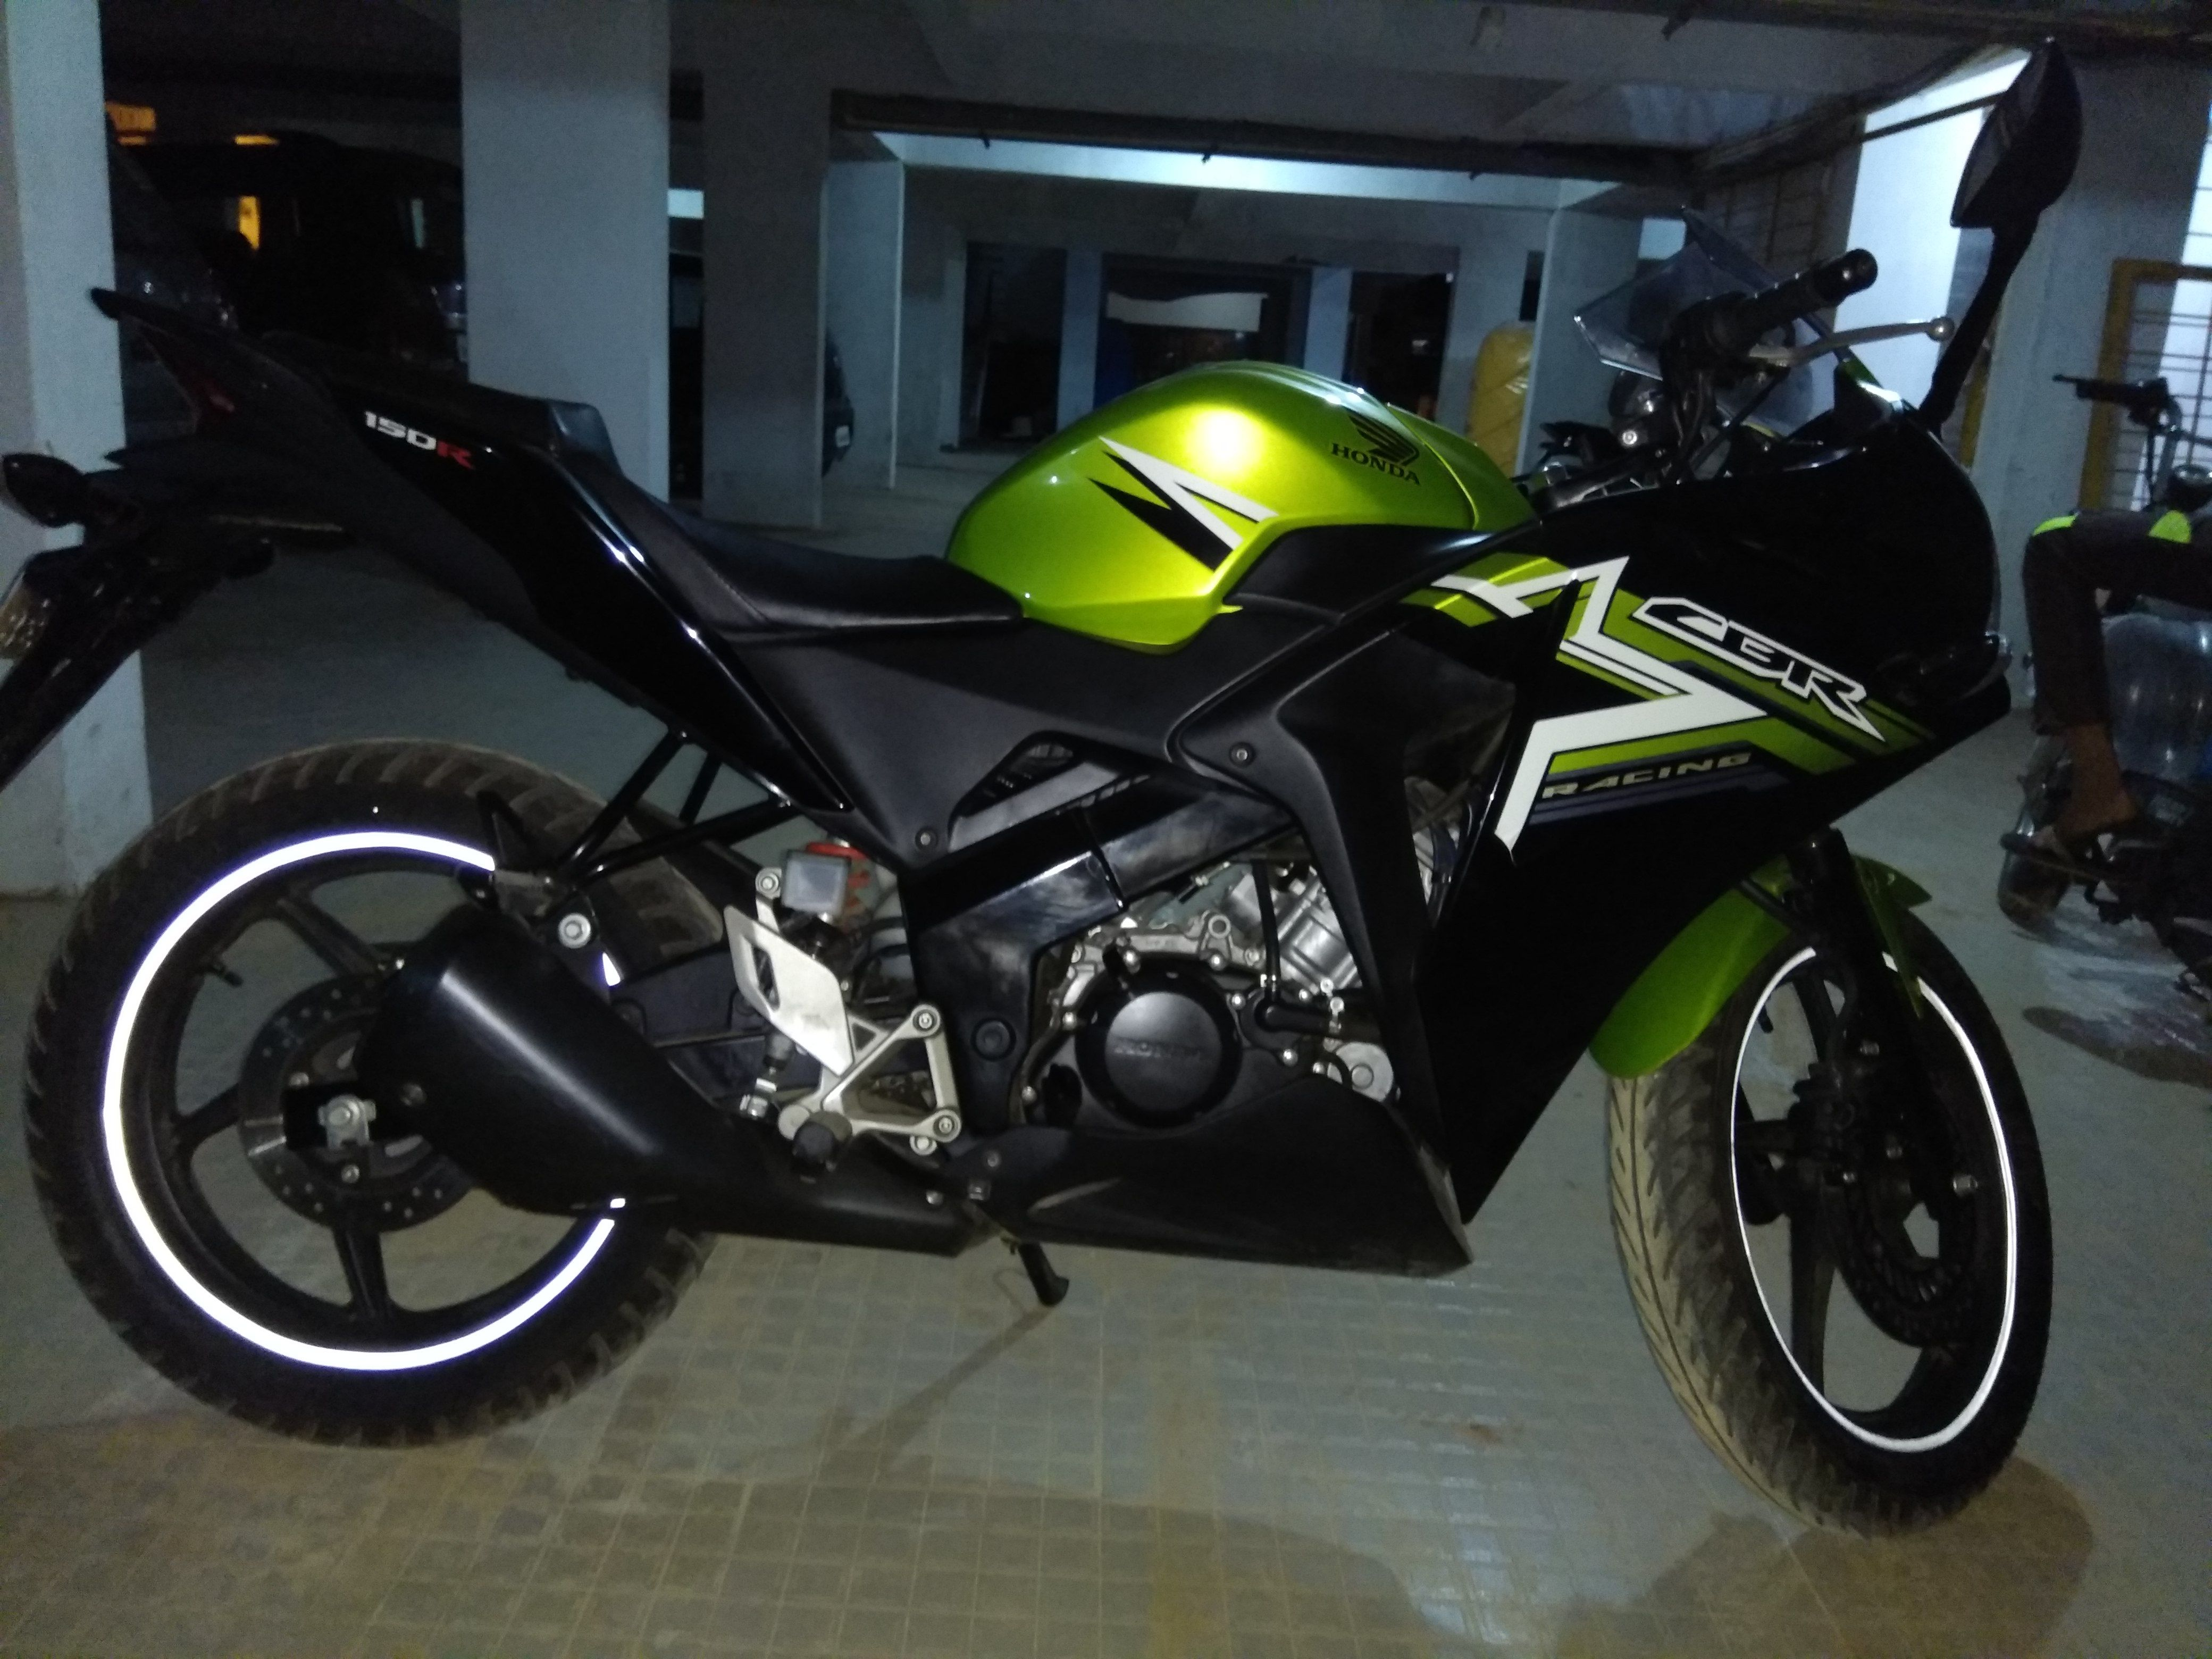 Honda Cbr 150 Model 2017 Model From Bangalore Check For More